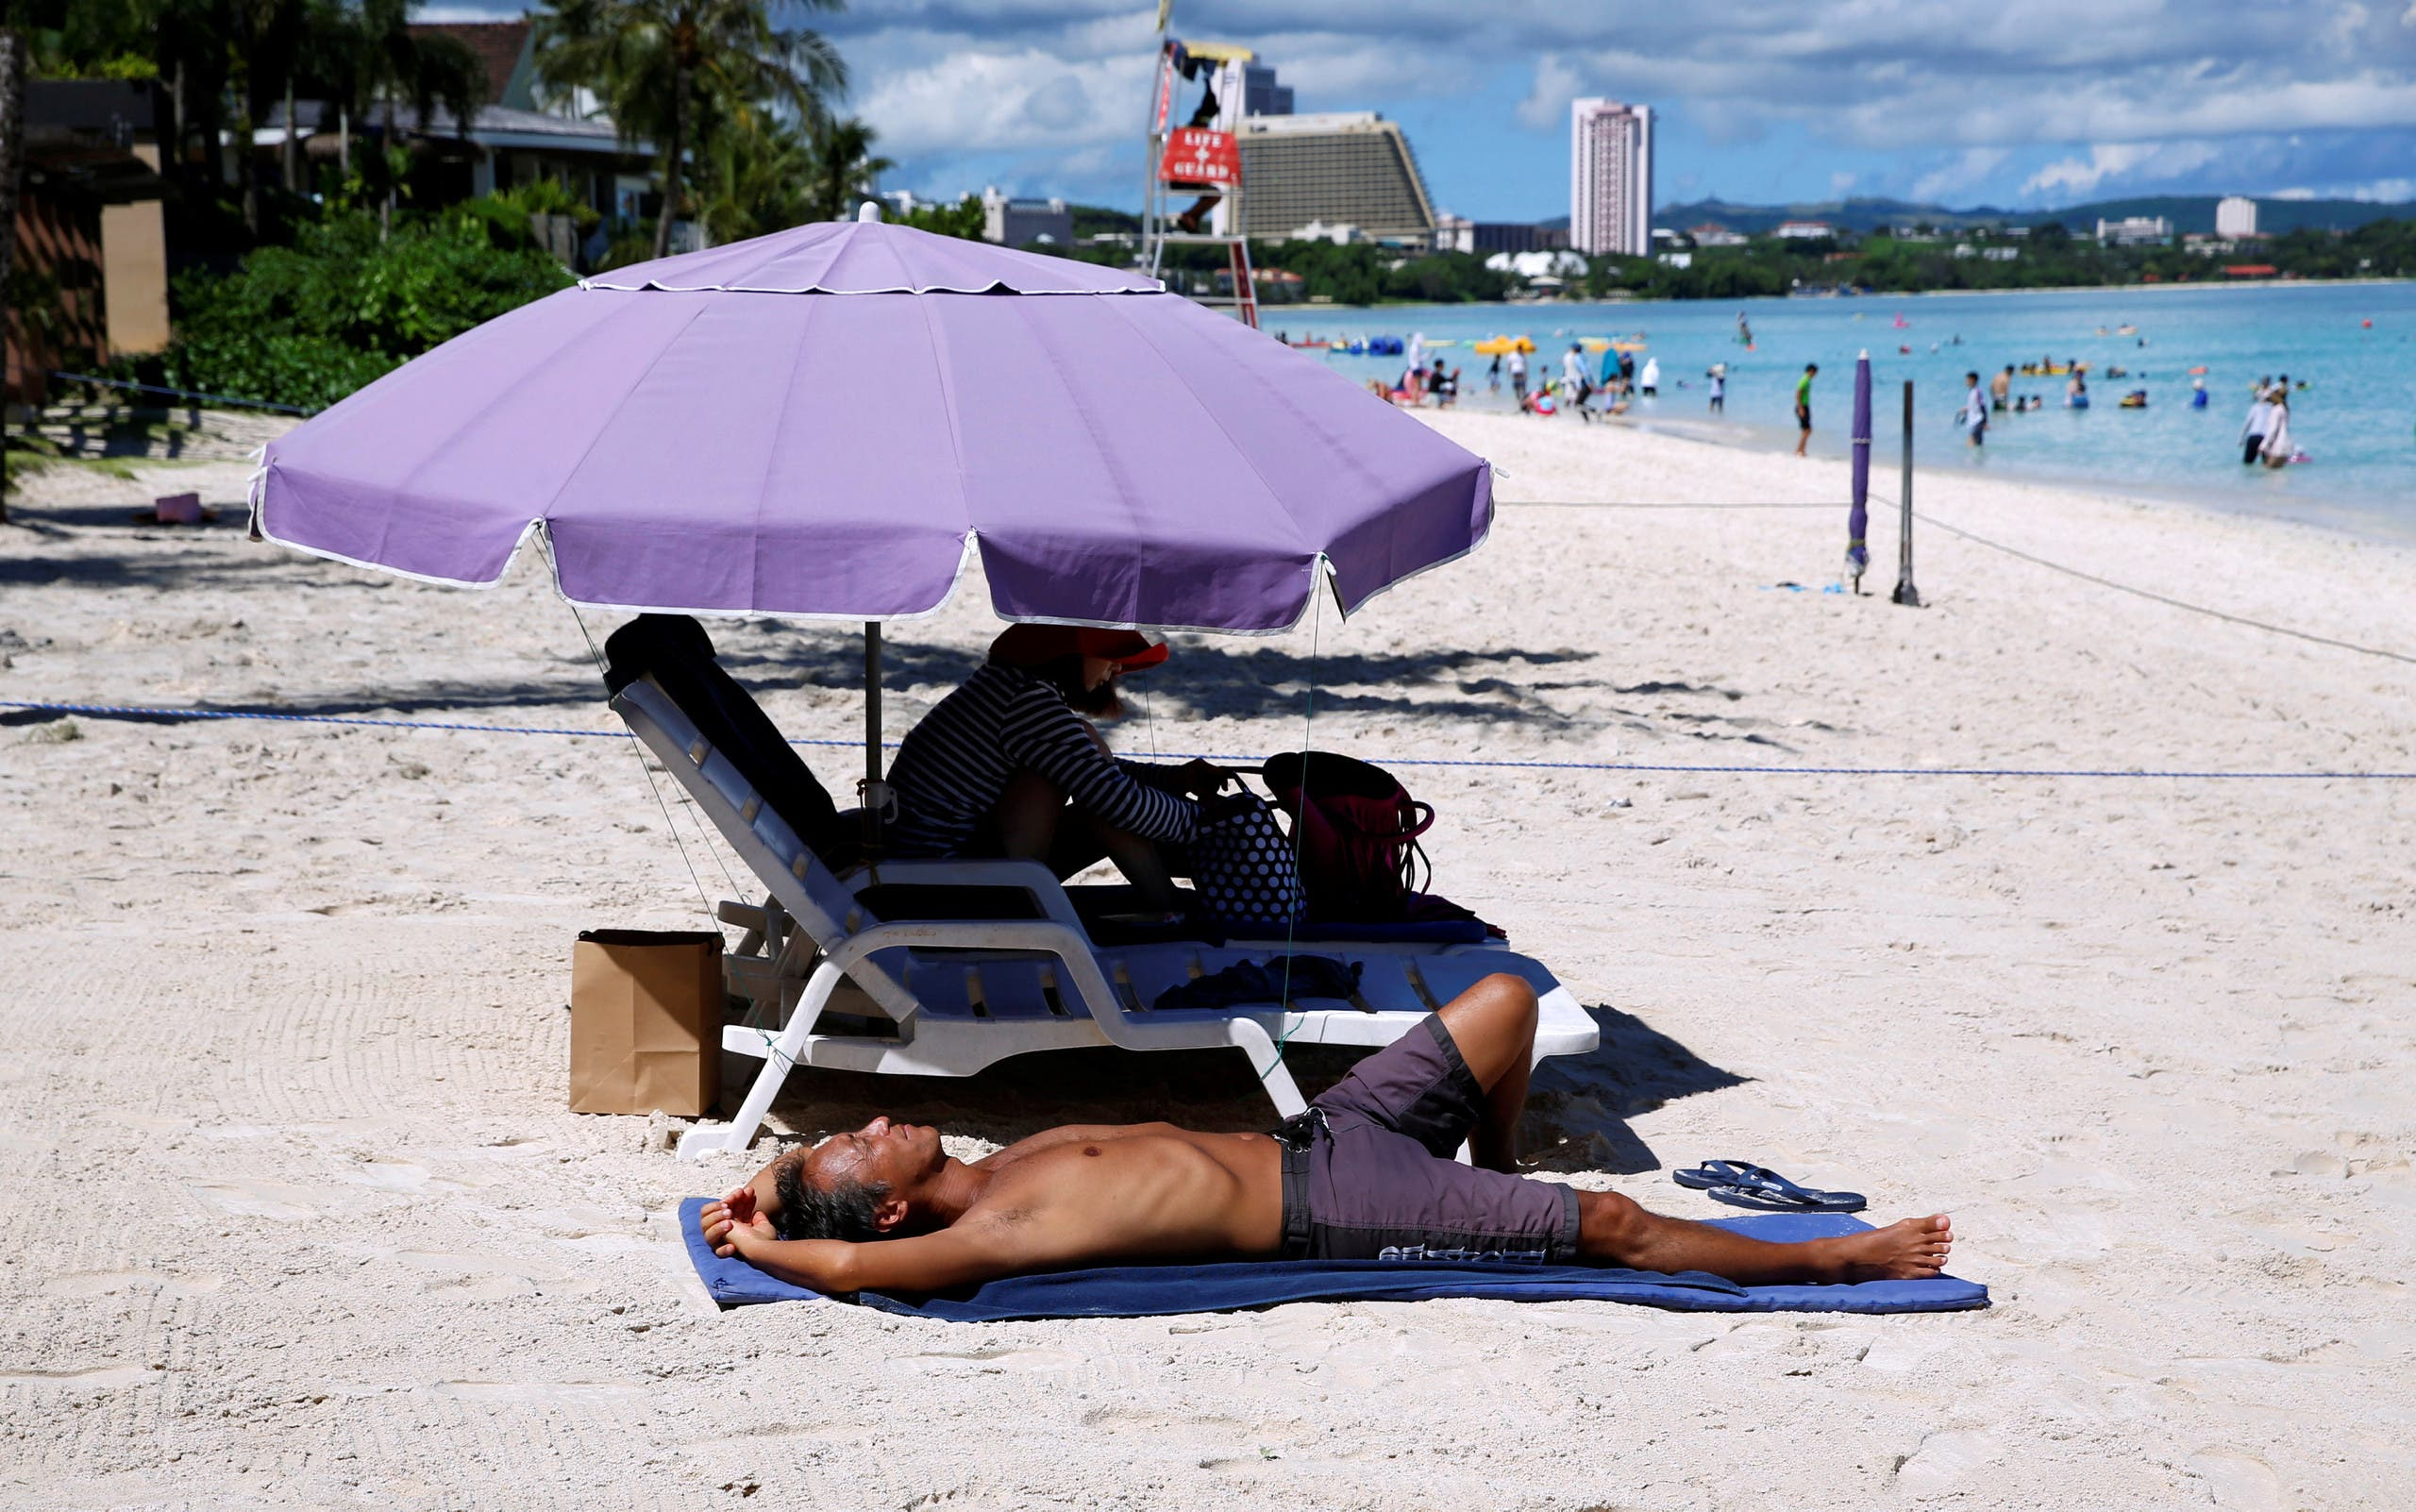 Tourists enjoy the beach in the Tumon tourist district on the island of Guam, a US Pacific Territory, on August 12, 2017. (Reuters)